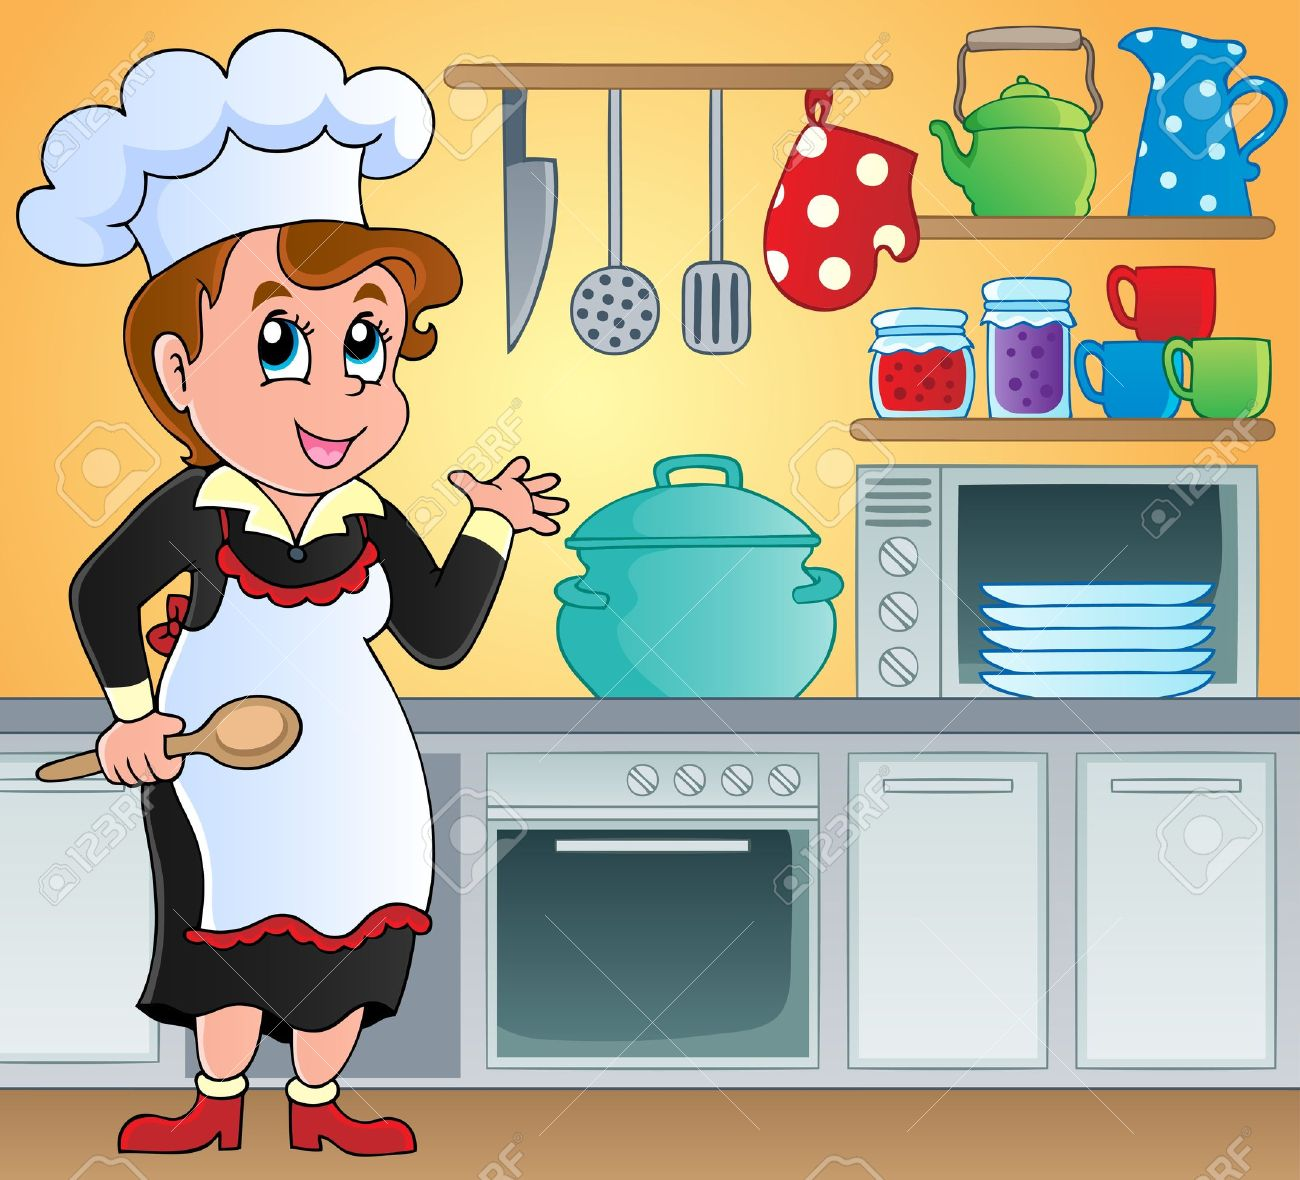 Kitchen Theme Image 6 - Vector Illustration Royalty Free Cliparts ...